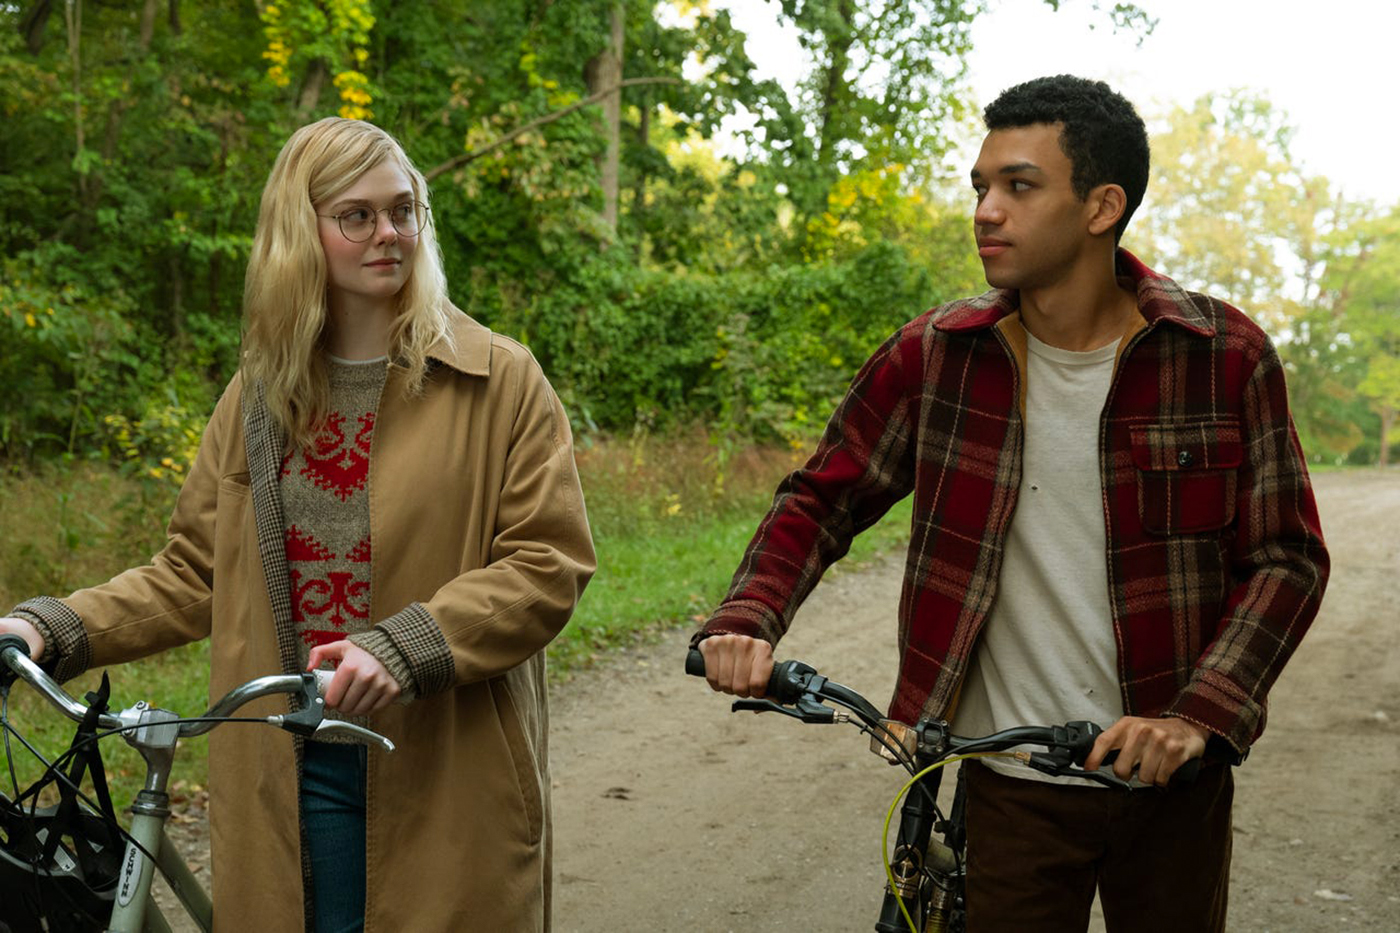 All The Bright Places follows Violet and Theodore as they're partnered together for a class project where their relationship expands and eventually goes beyond friendship.